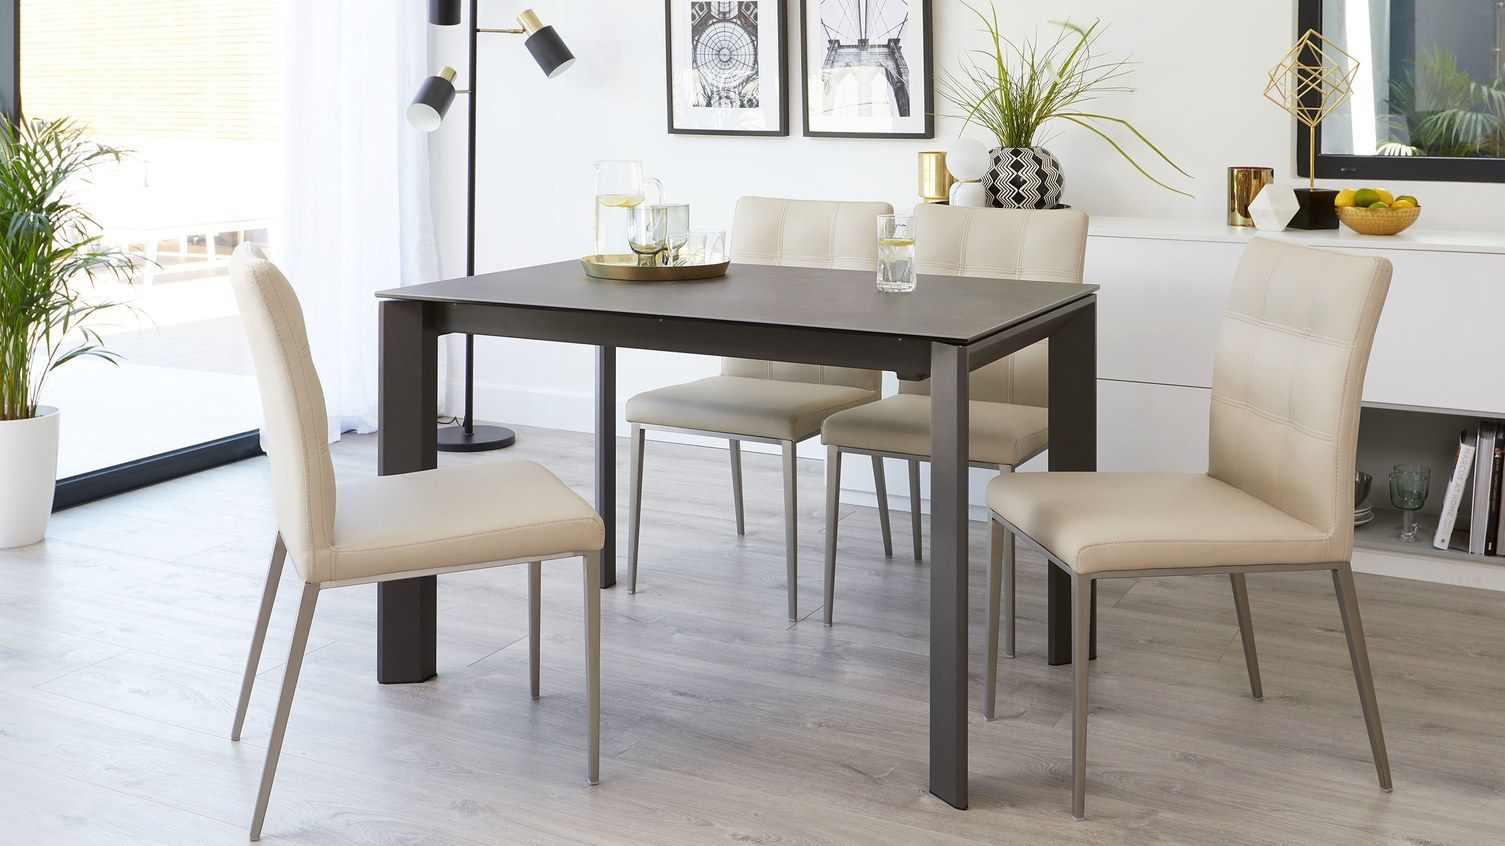 Furniture that grows with your family - louis dining table